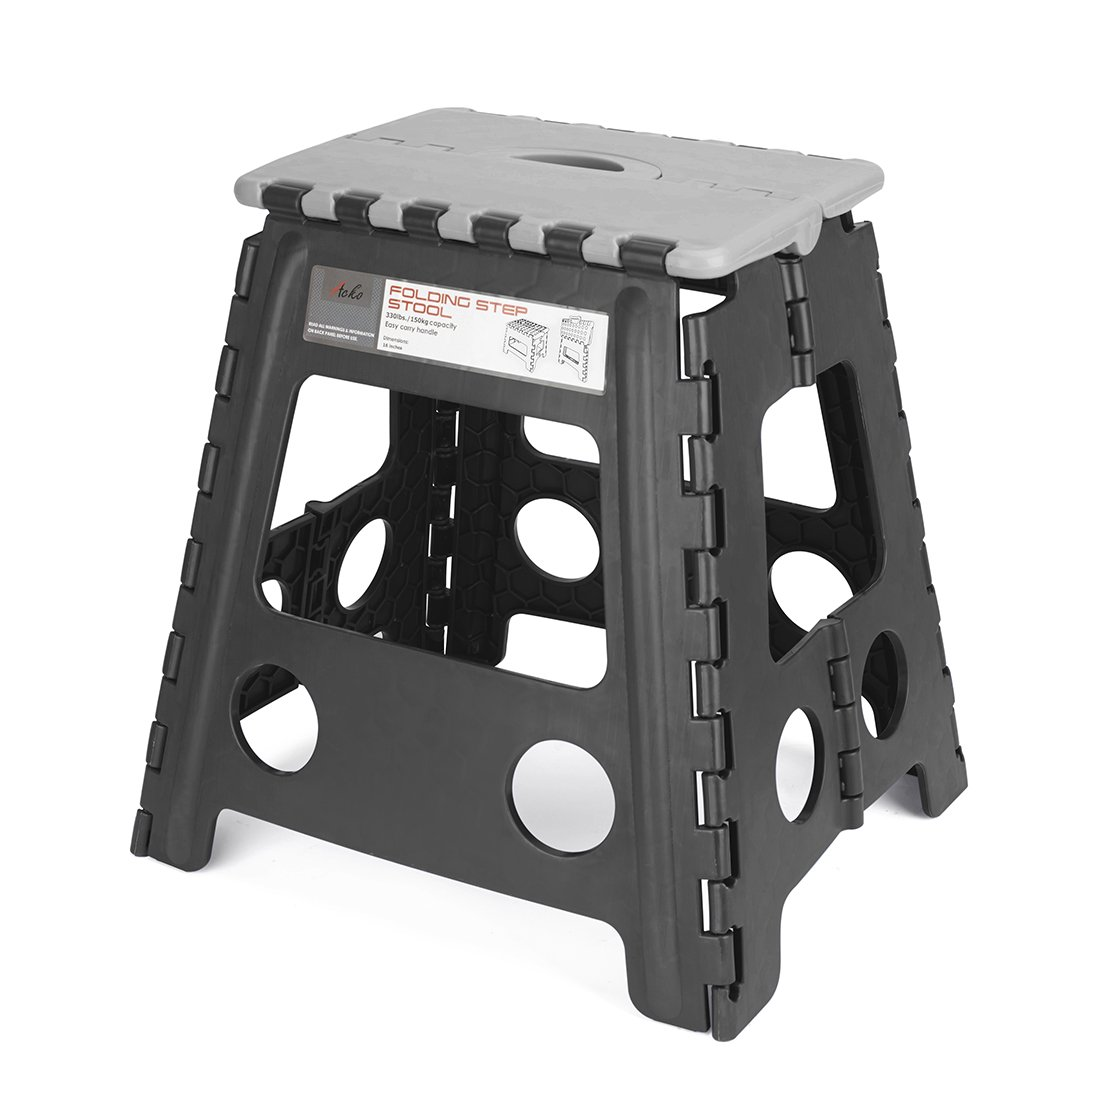 Acko 16 inches Folding Step Stool for Adults and Kids Kitchen and Garden Step Stool Black Matching Grey Color (Black+Grey)